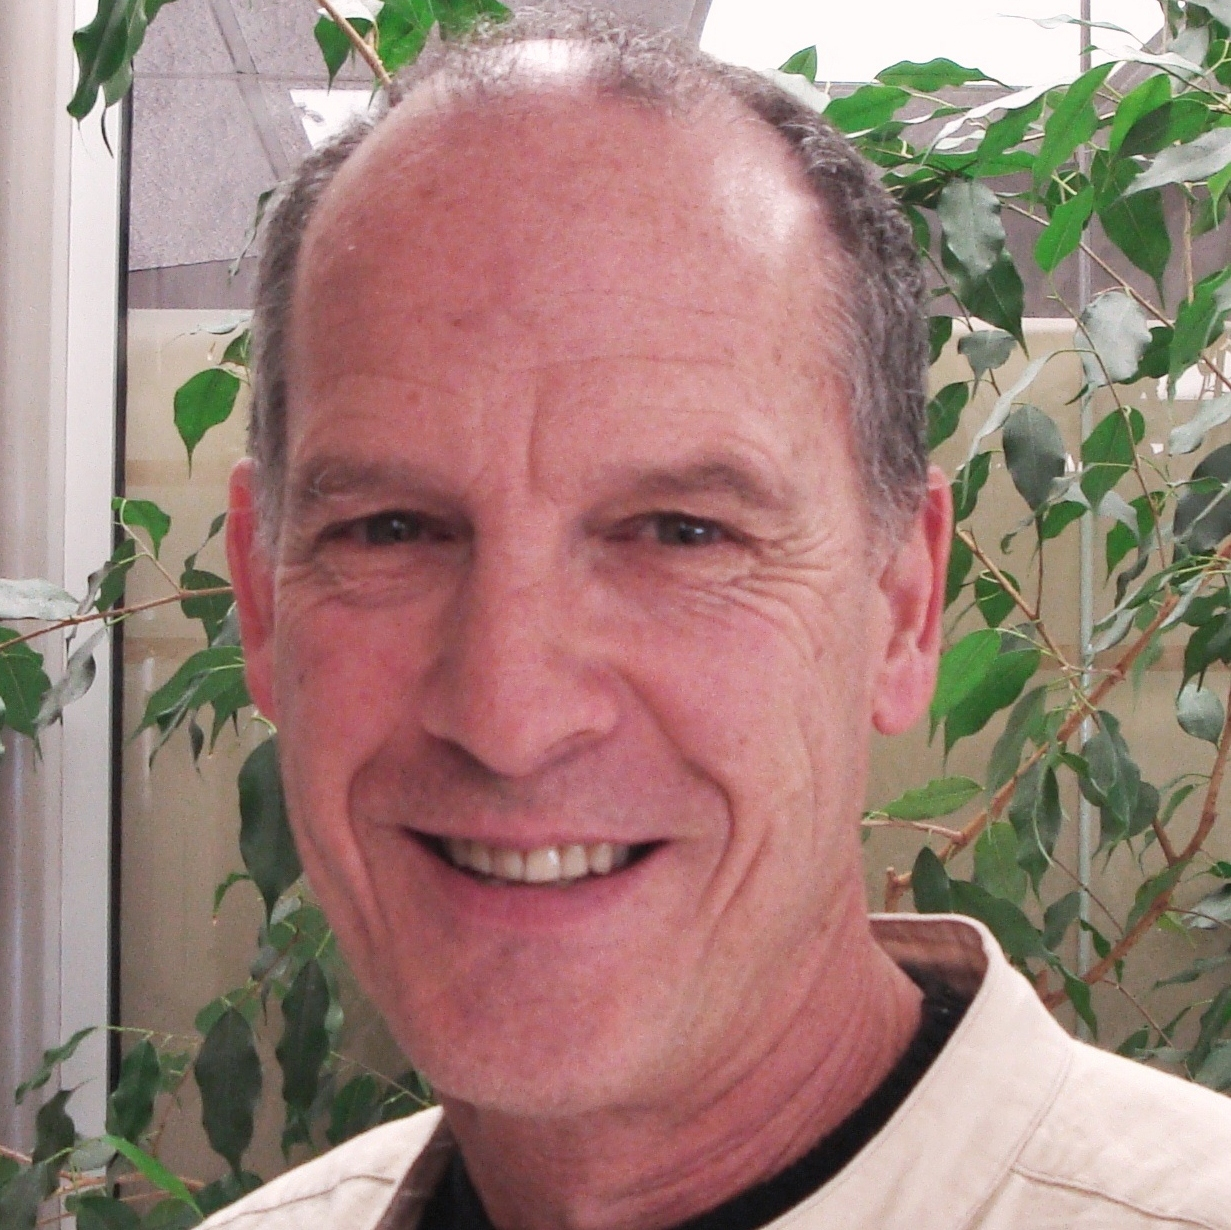 Tim McCreanor is a senior researcher at SHORE and Whariki Research Centre, within the College of Health at Massey University in Auckland. His broad public health orientation and interest in the social  determinants of health and wellbeing, provide  a platform for social science projects that support and stimulate social change.